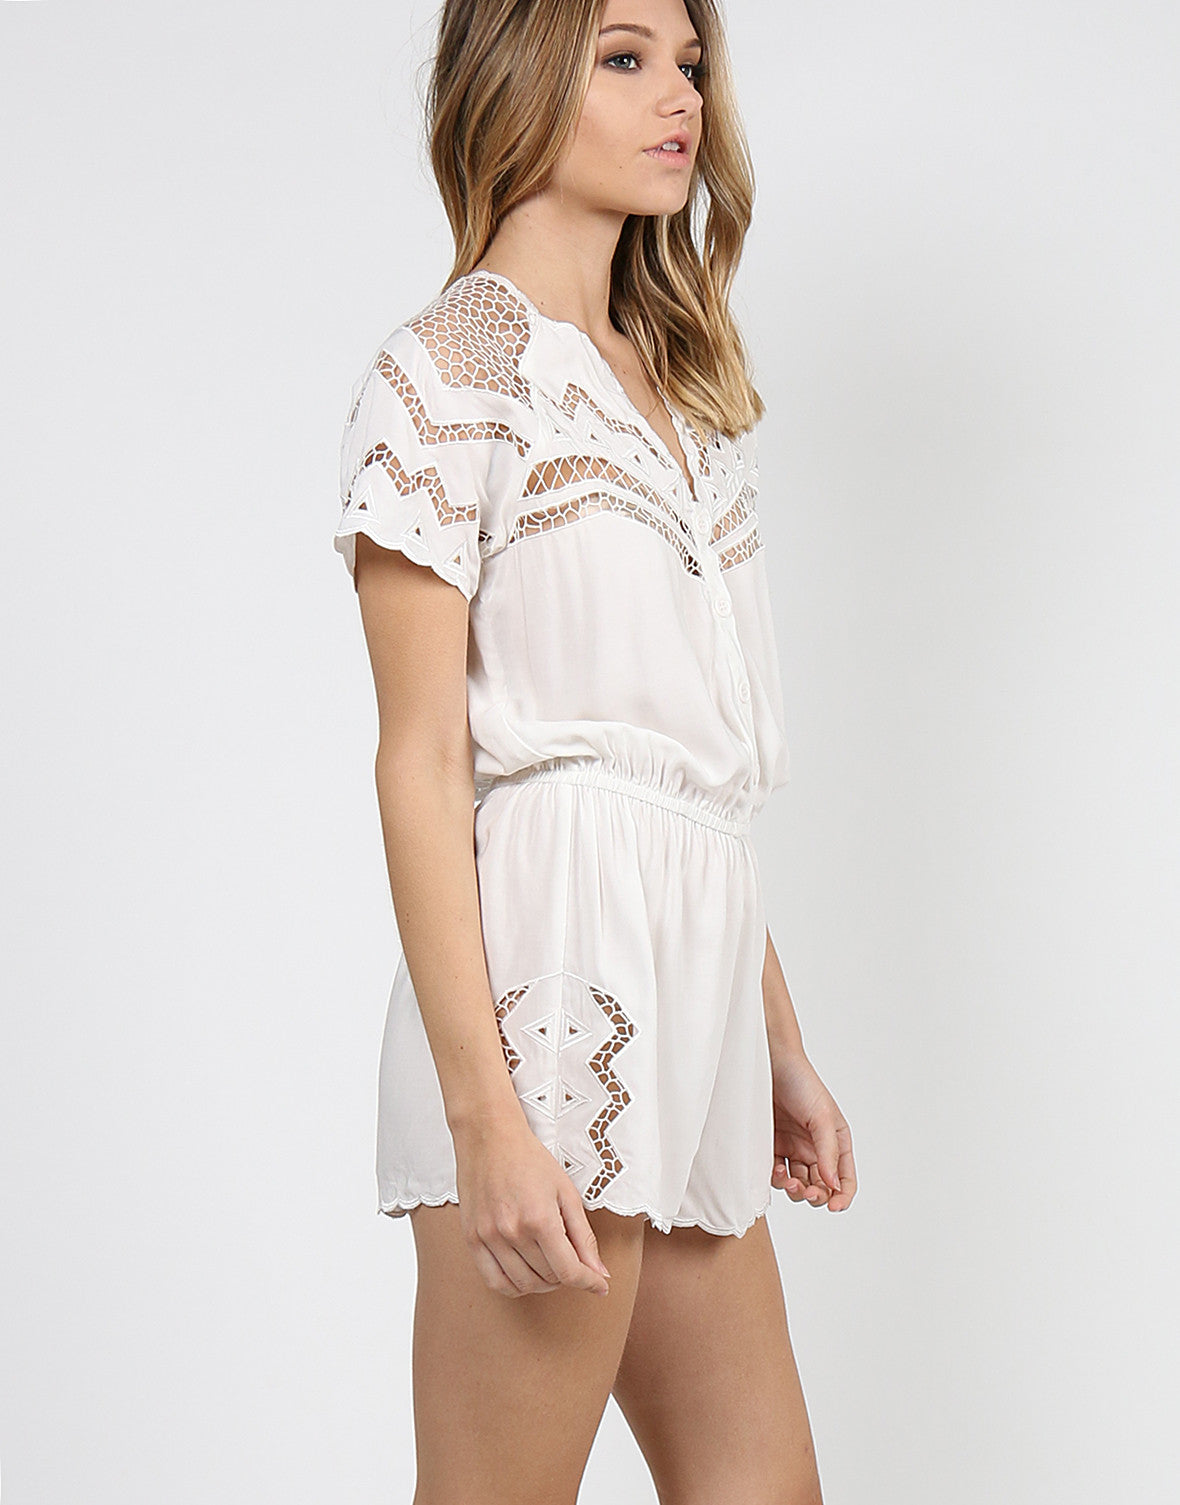 Netted Short Sleeve Romper - White